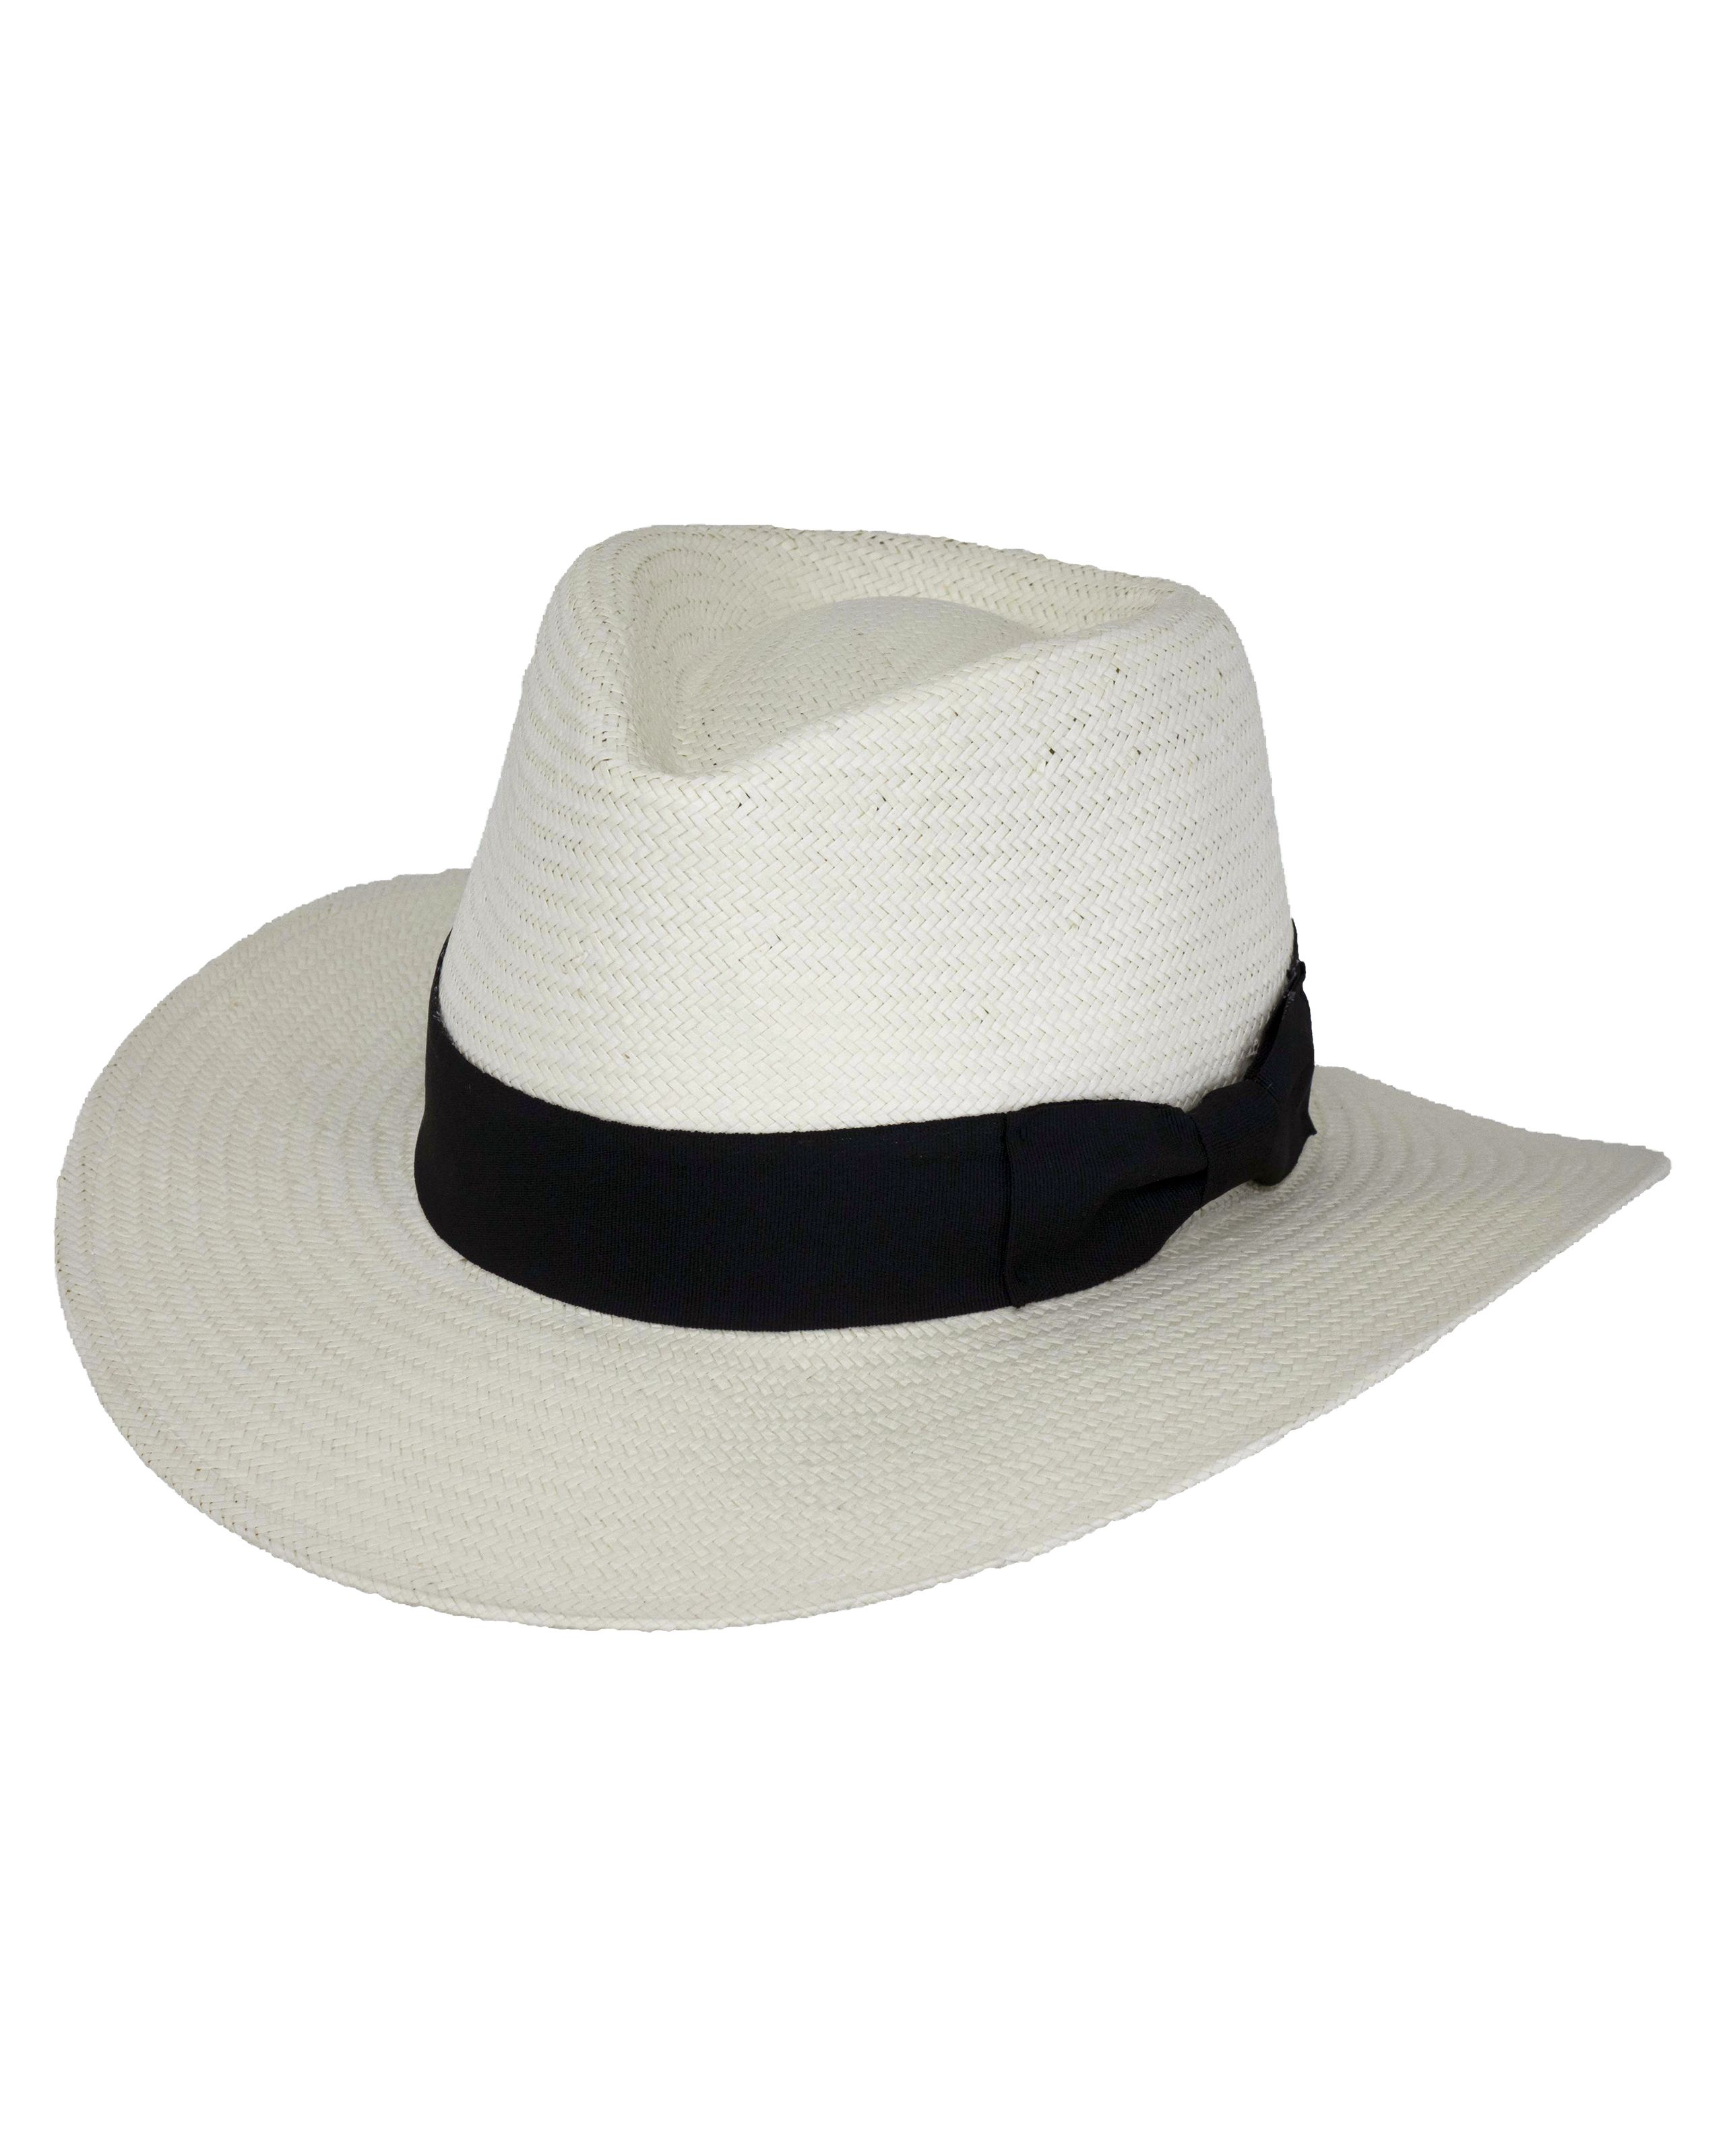 d26d9c45 Simply put, The Brewster Straw Hat is both simple and elegant. Made from a